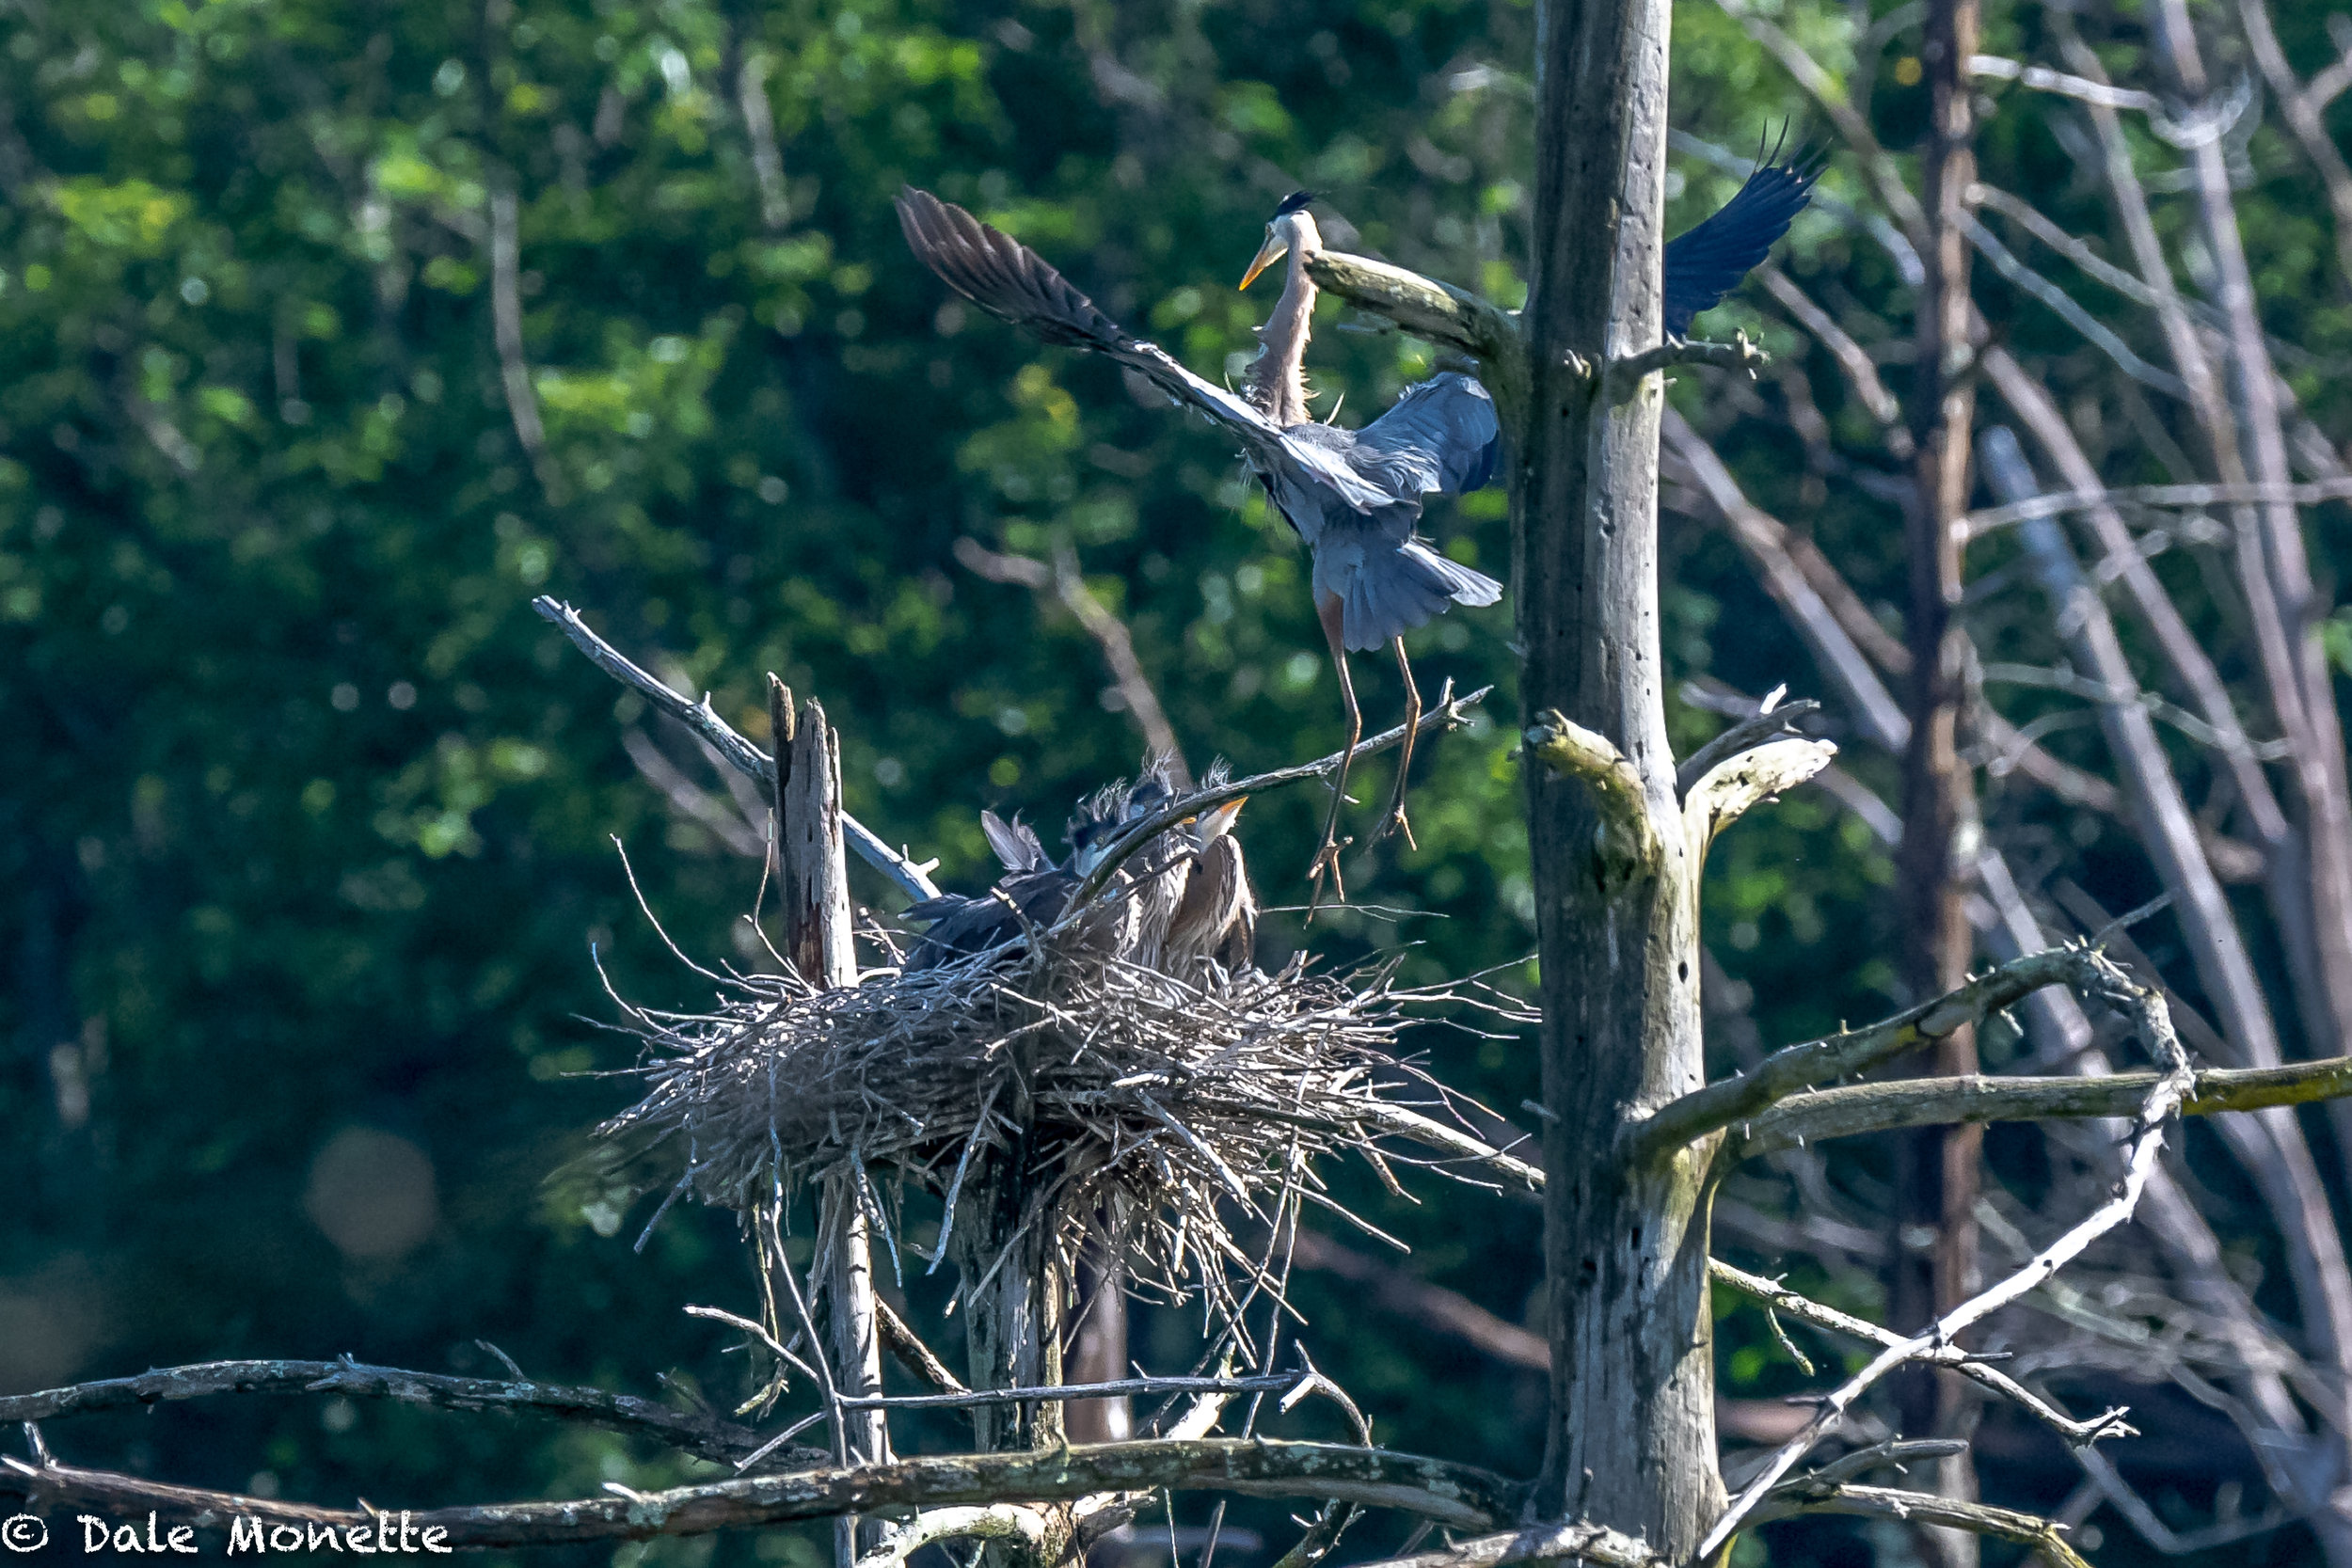 An adult great blue heron drops in with breakfast for the three chicks that are all hunkered down in the nest, (6/18/18)